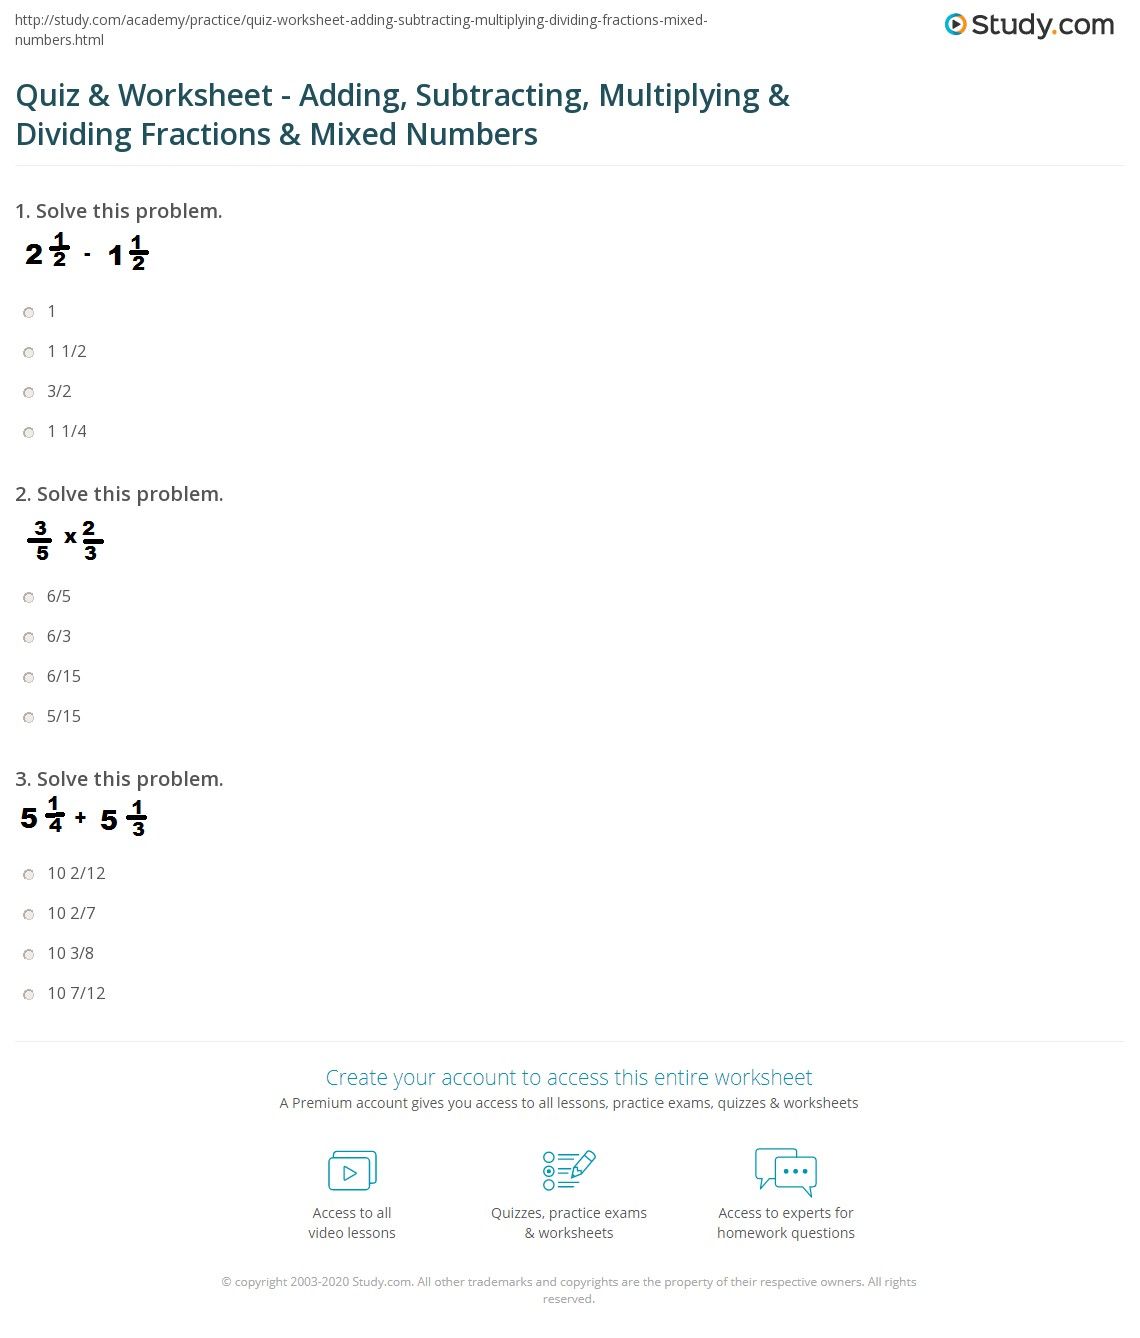 worksheet Multiplication Of Mixed Numbers Worksheets quiz worksheet adding subtracting multiplying dividing print add subtract multiply divide fractions mixed numbers worksheet